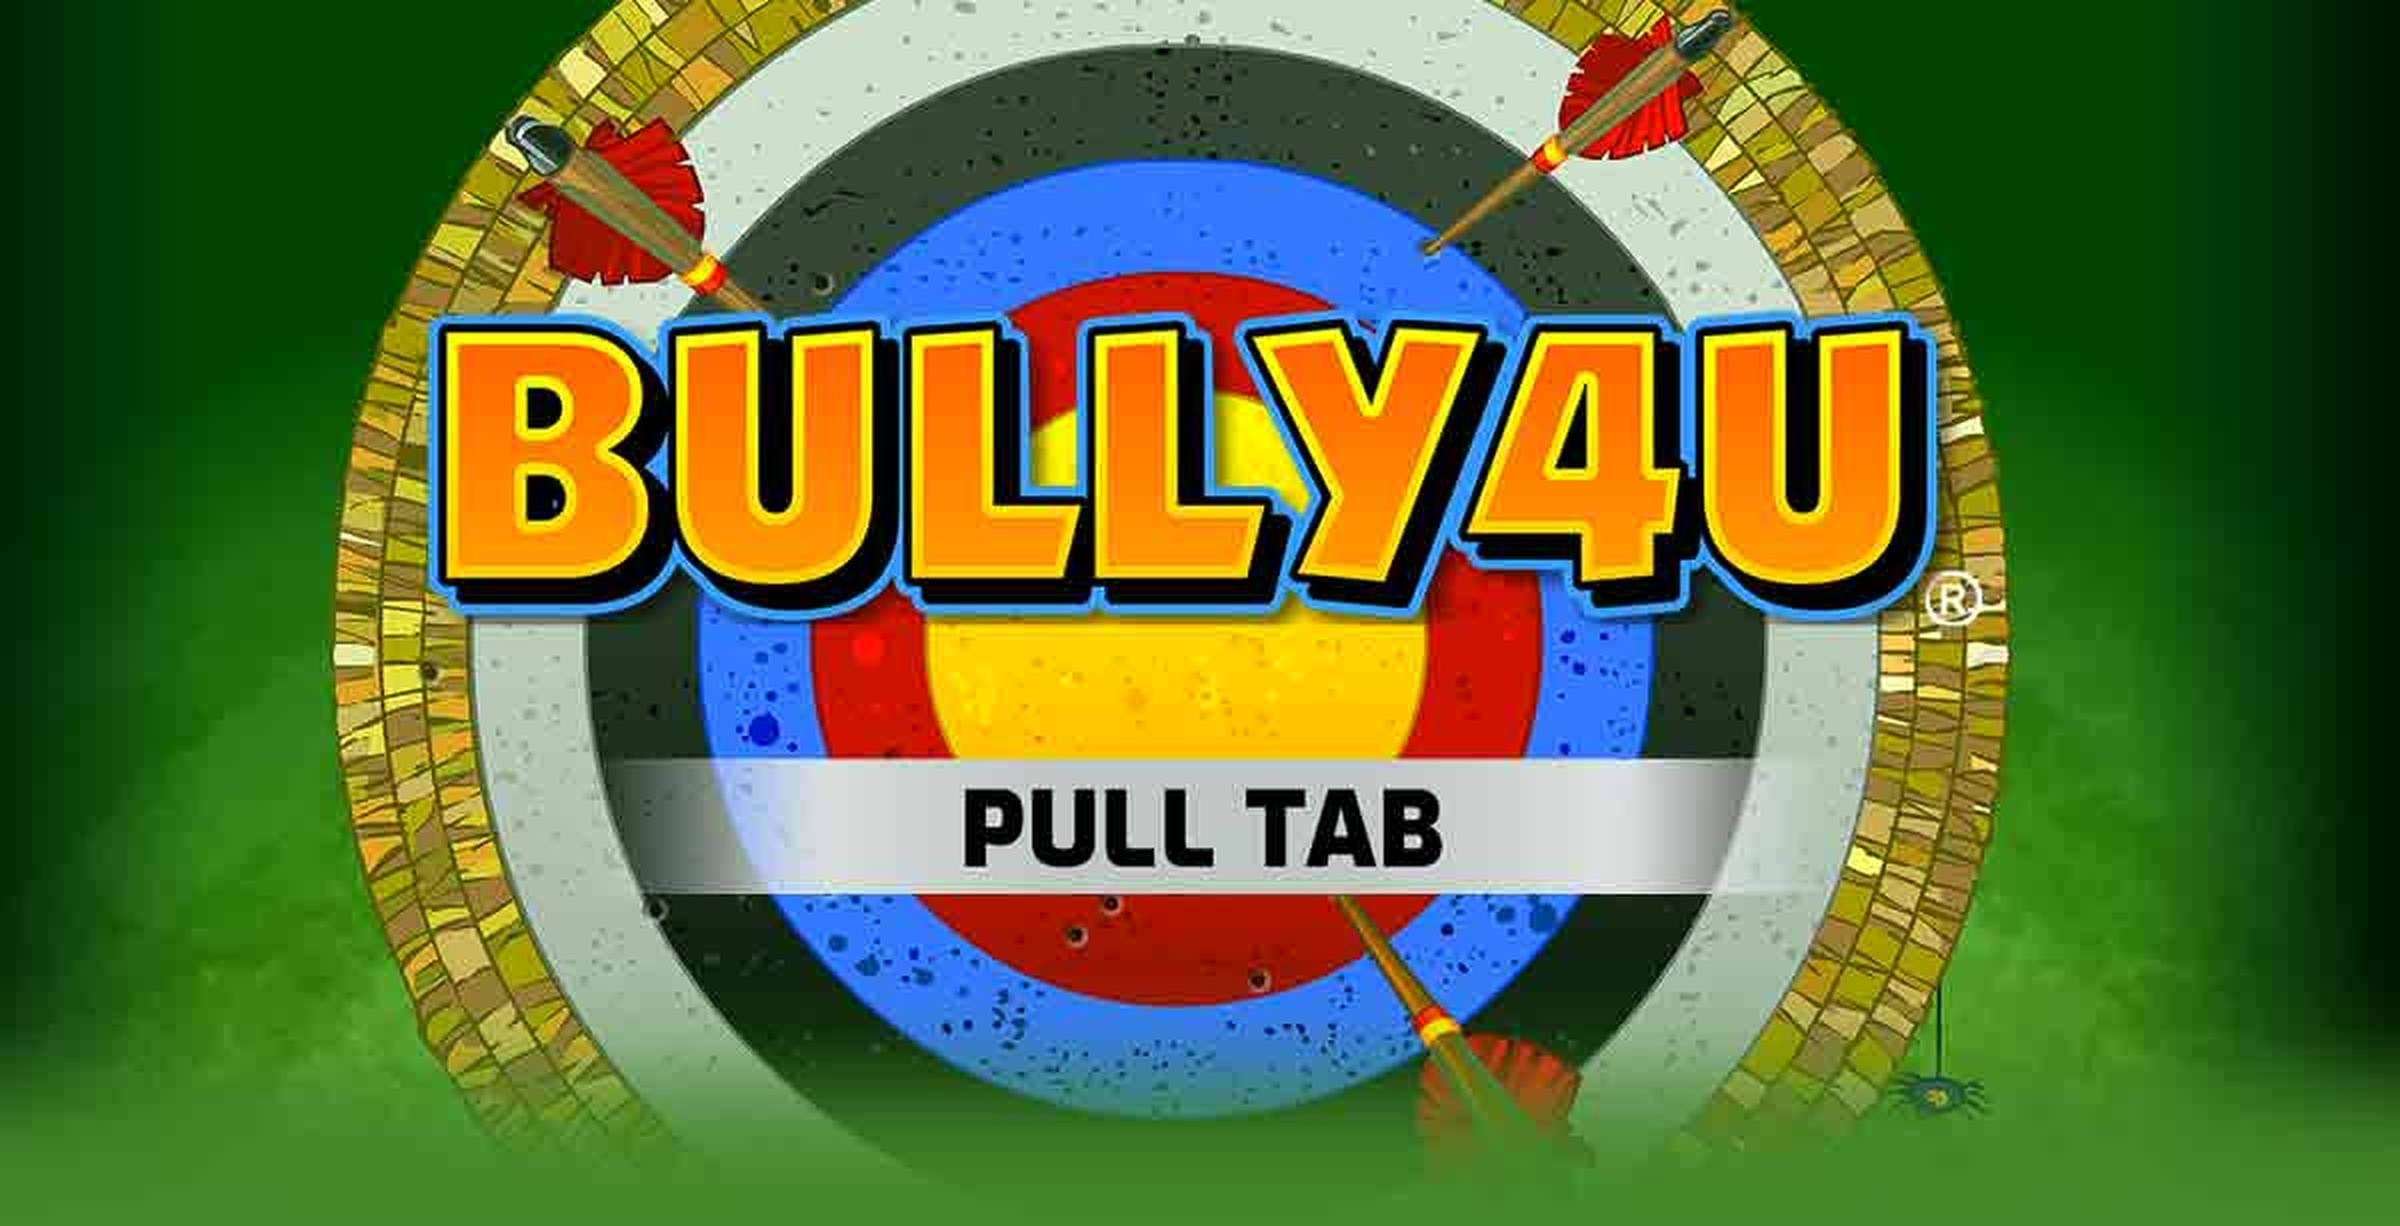 The Bully4U Pull Tab Online Slot Demo Game by Realistic Games